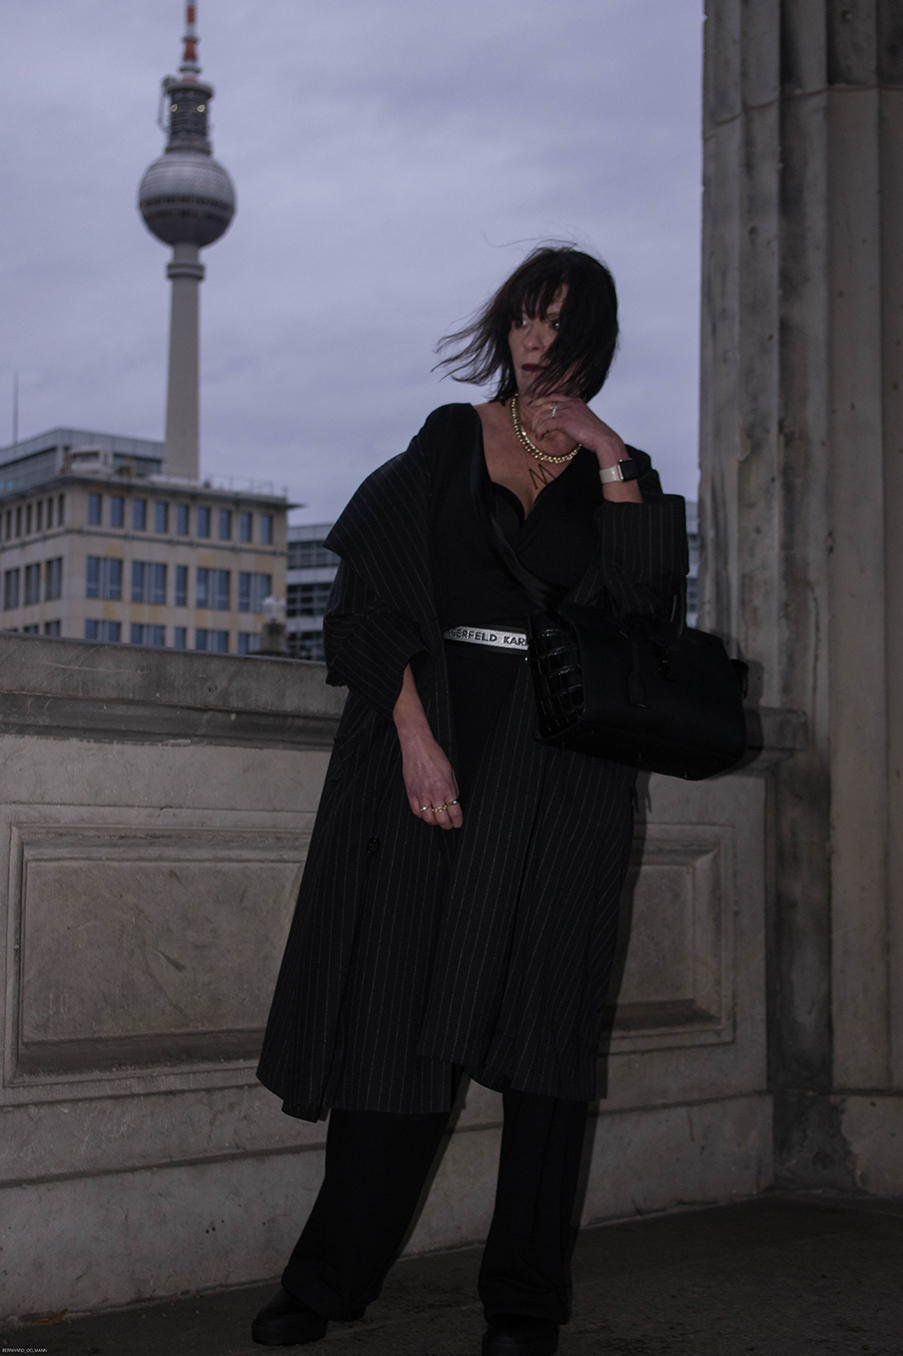 Just-take-a-look Berlin - Ausblick 2020 - Outfit Jumpsuit Museumsinsel-11.1